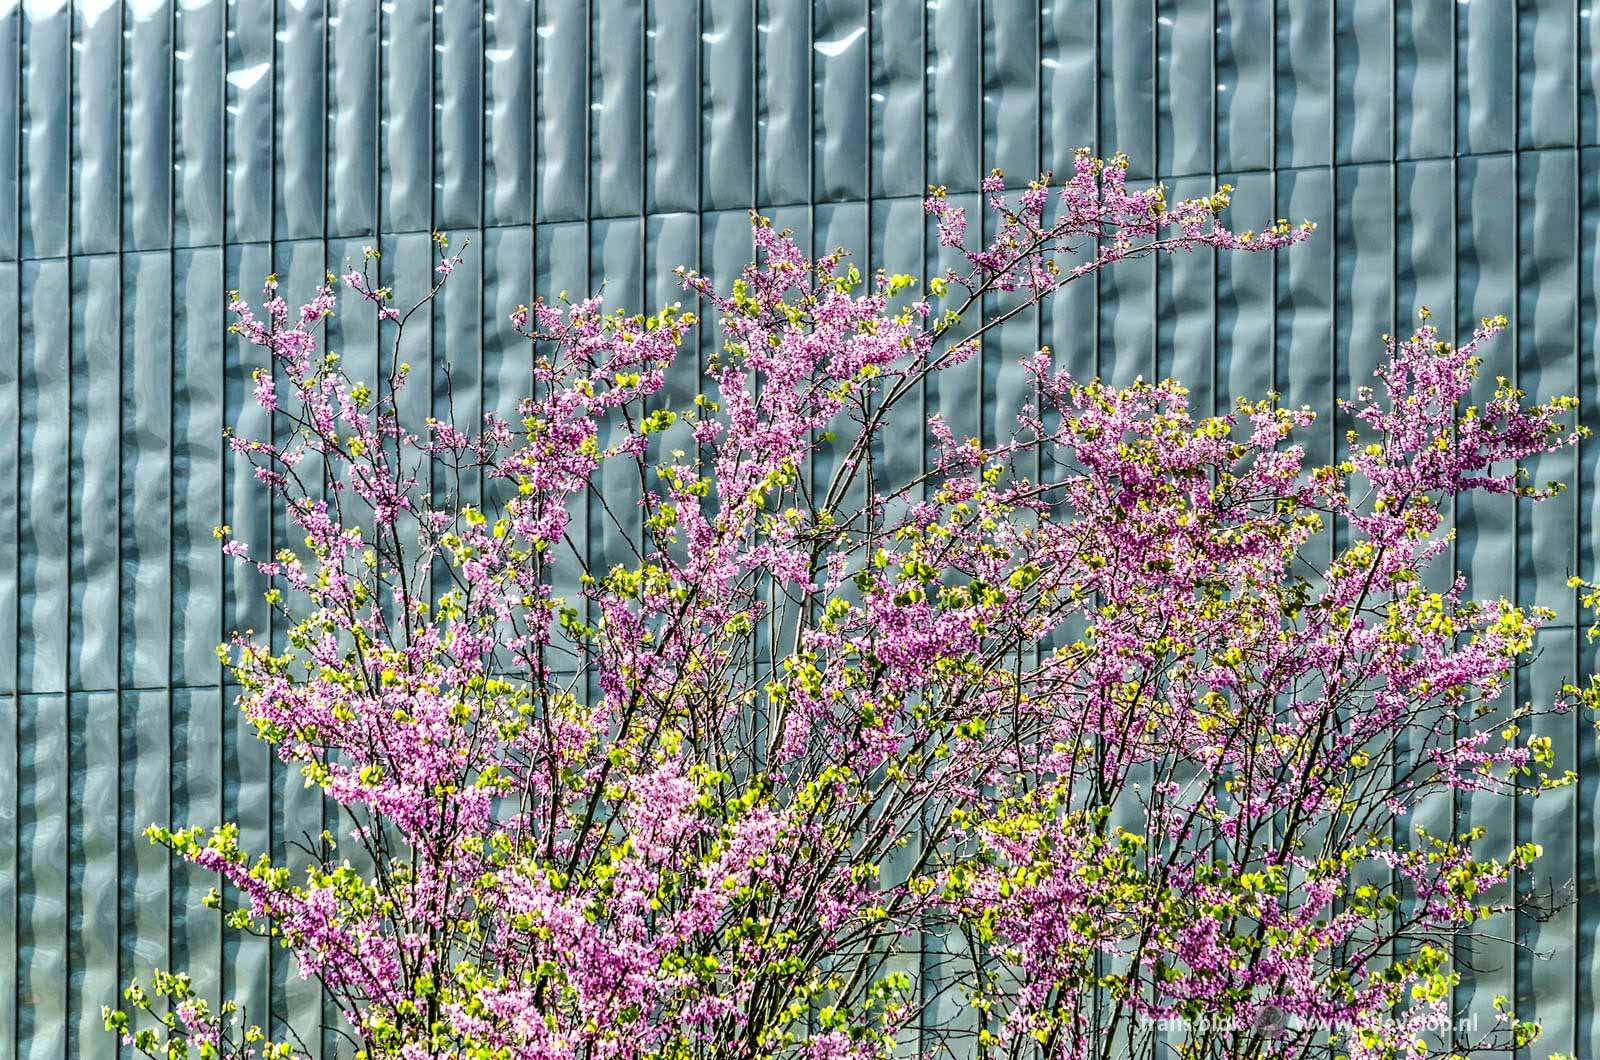 Cercidiphyllum japonicum or katsura trees (or shrubs) in bloom in springtime with in the background the stainless steel facade of the Rotterdam Central Station